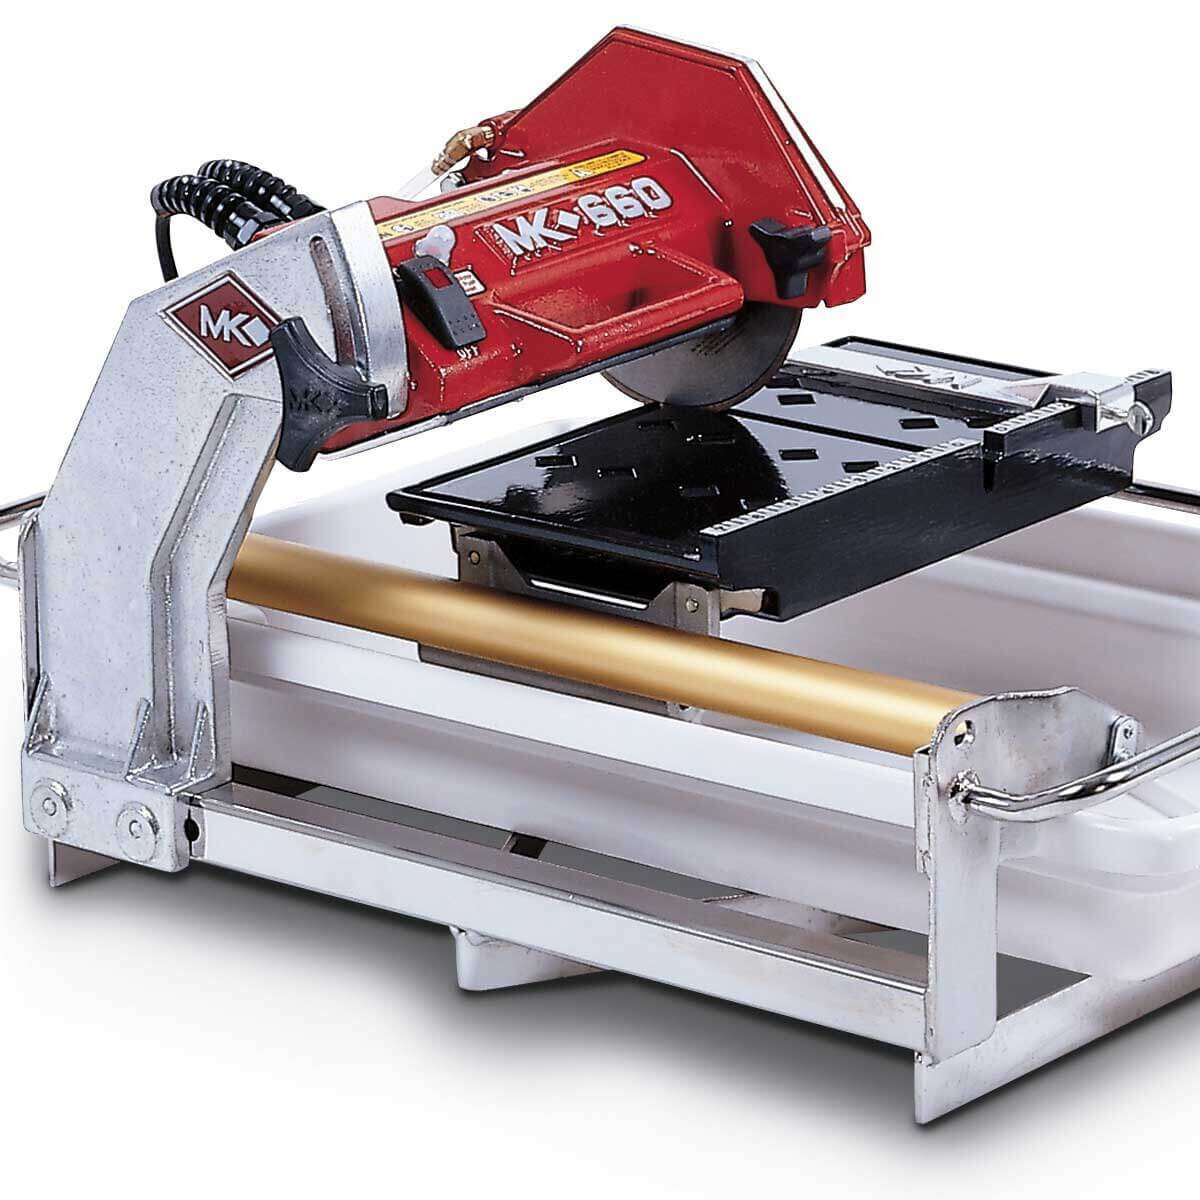 MK Diamond MK-660 Wet Tile Saw Side